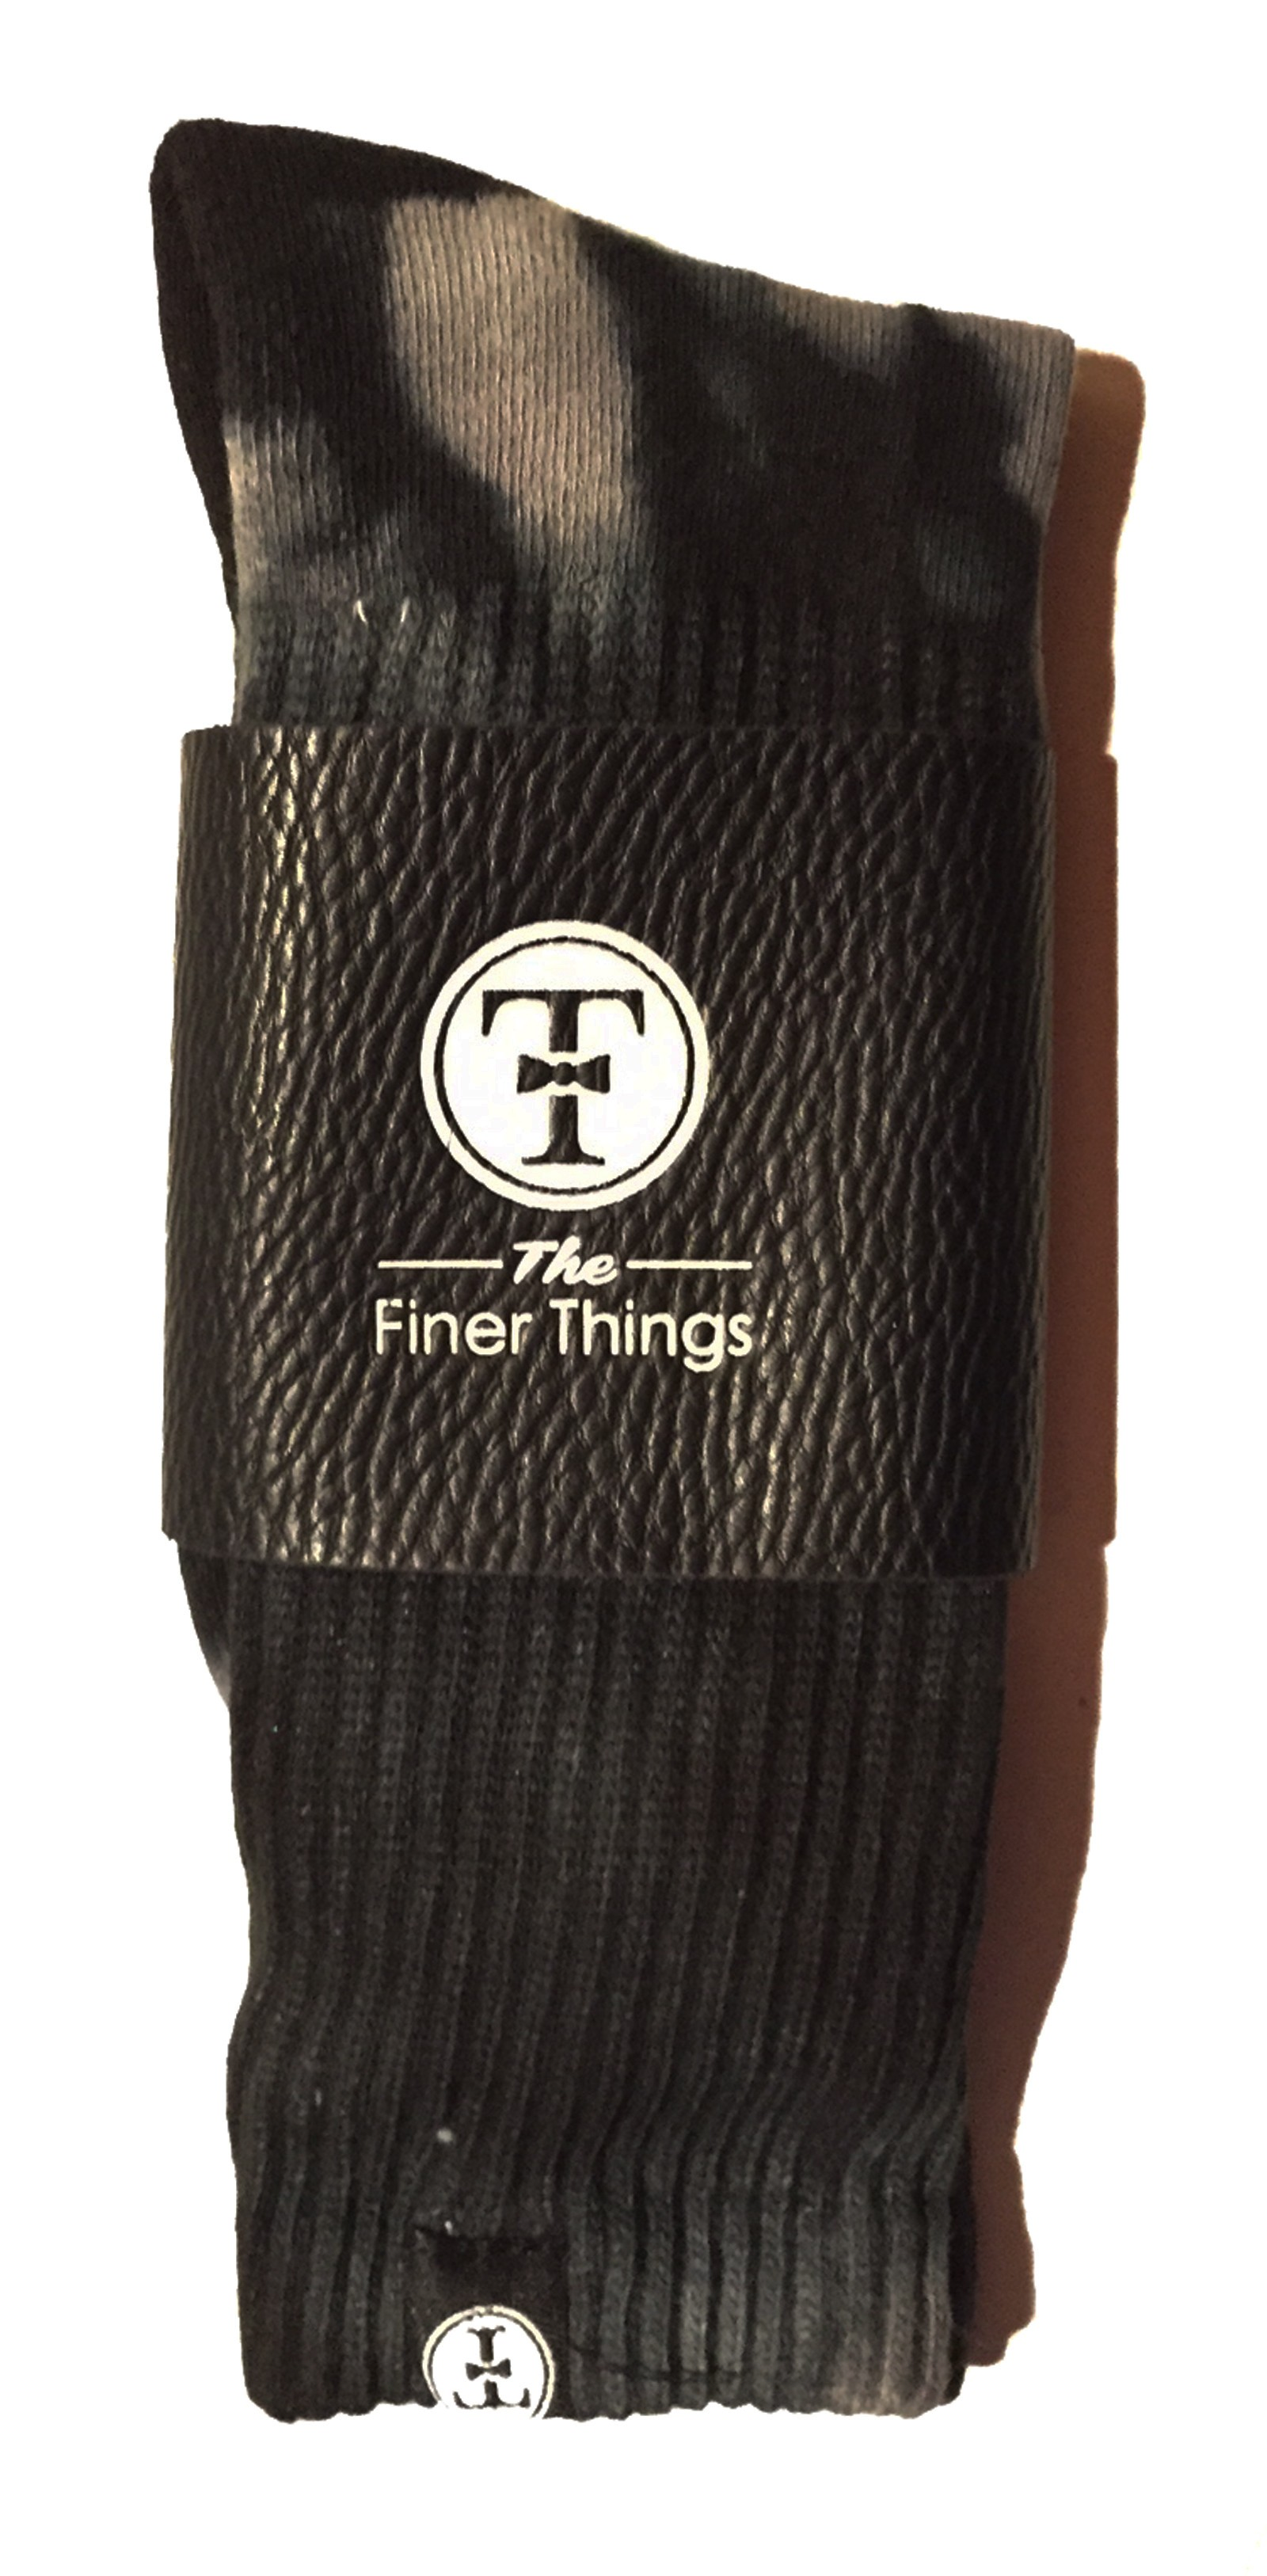 The Finer Things Socks - Badminton Series Socken